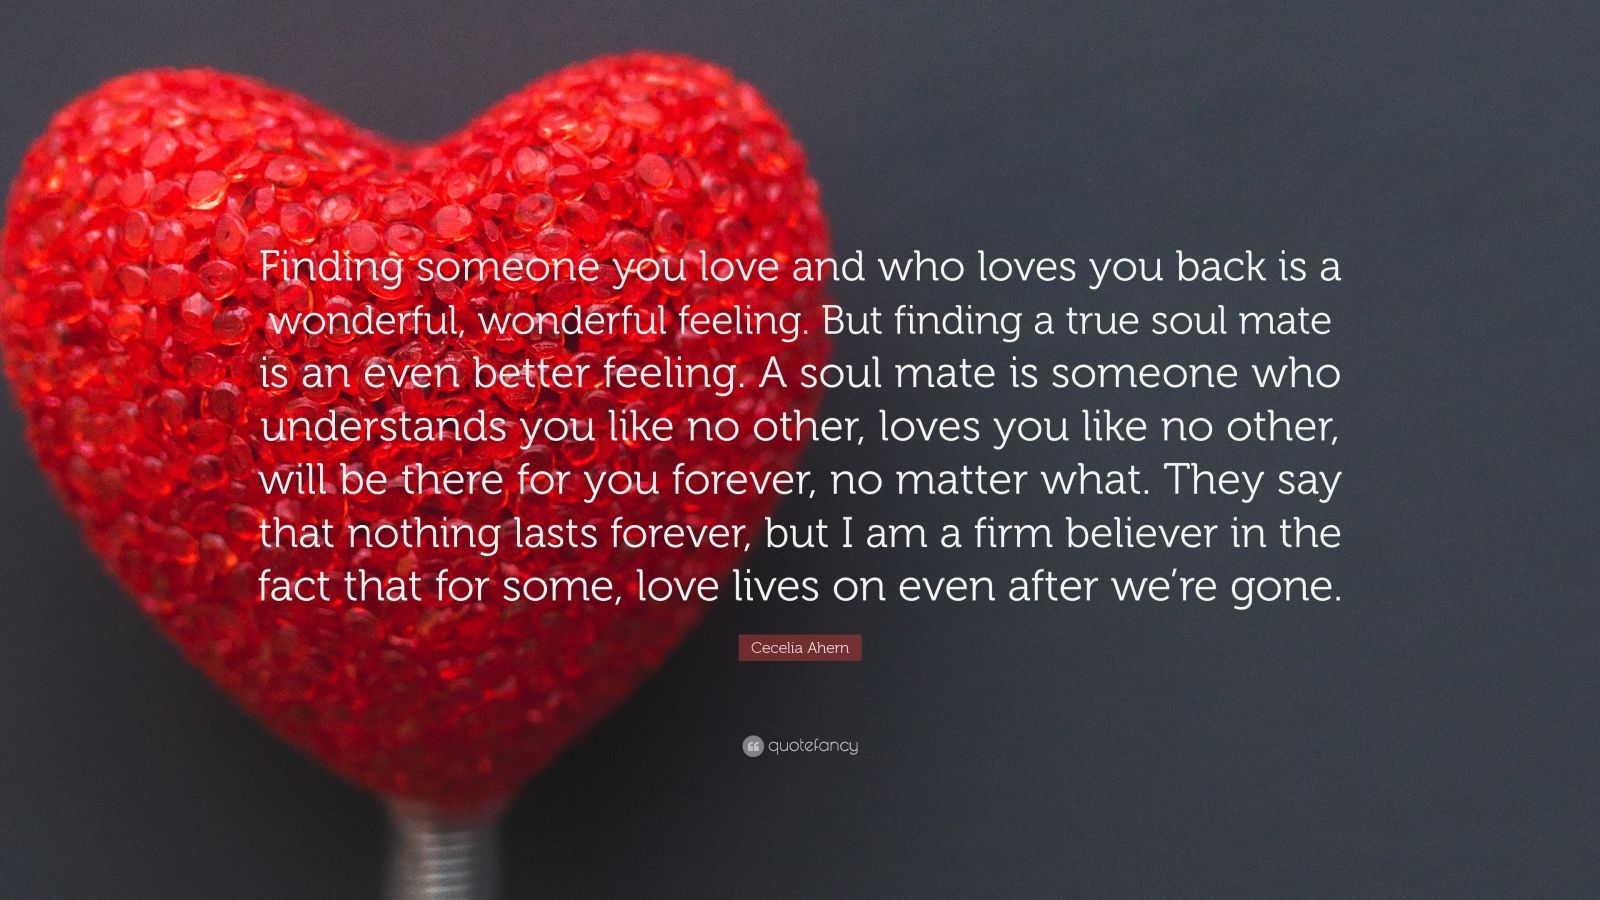 Love Wallpapers With Matter : cecelia Ahern Quote: ?Finding someone you love and who loves you back is a wonderful, wonderful ...